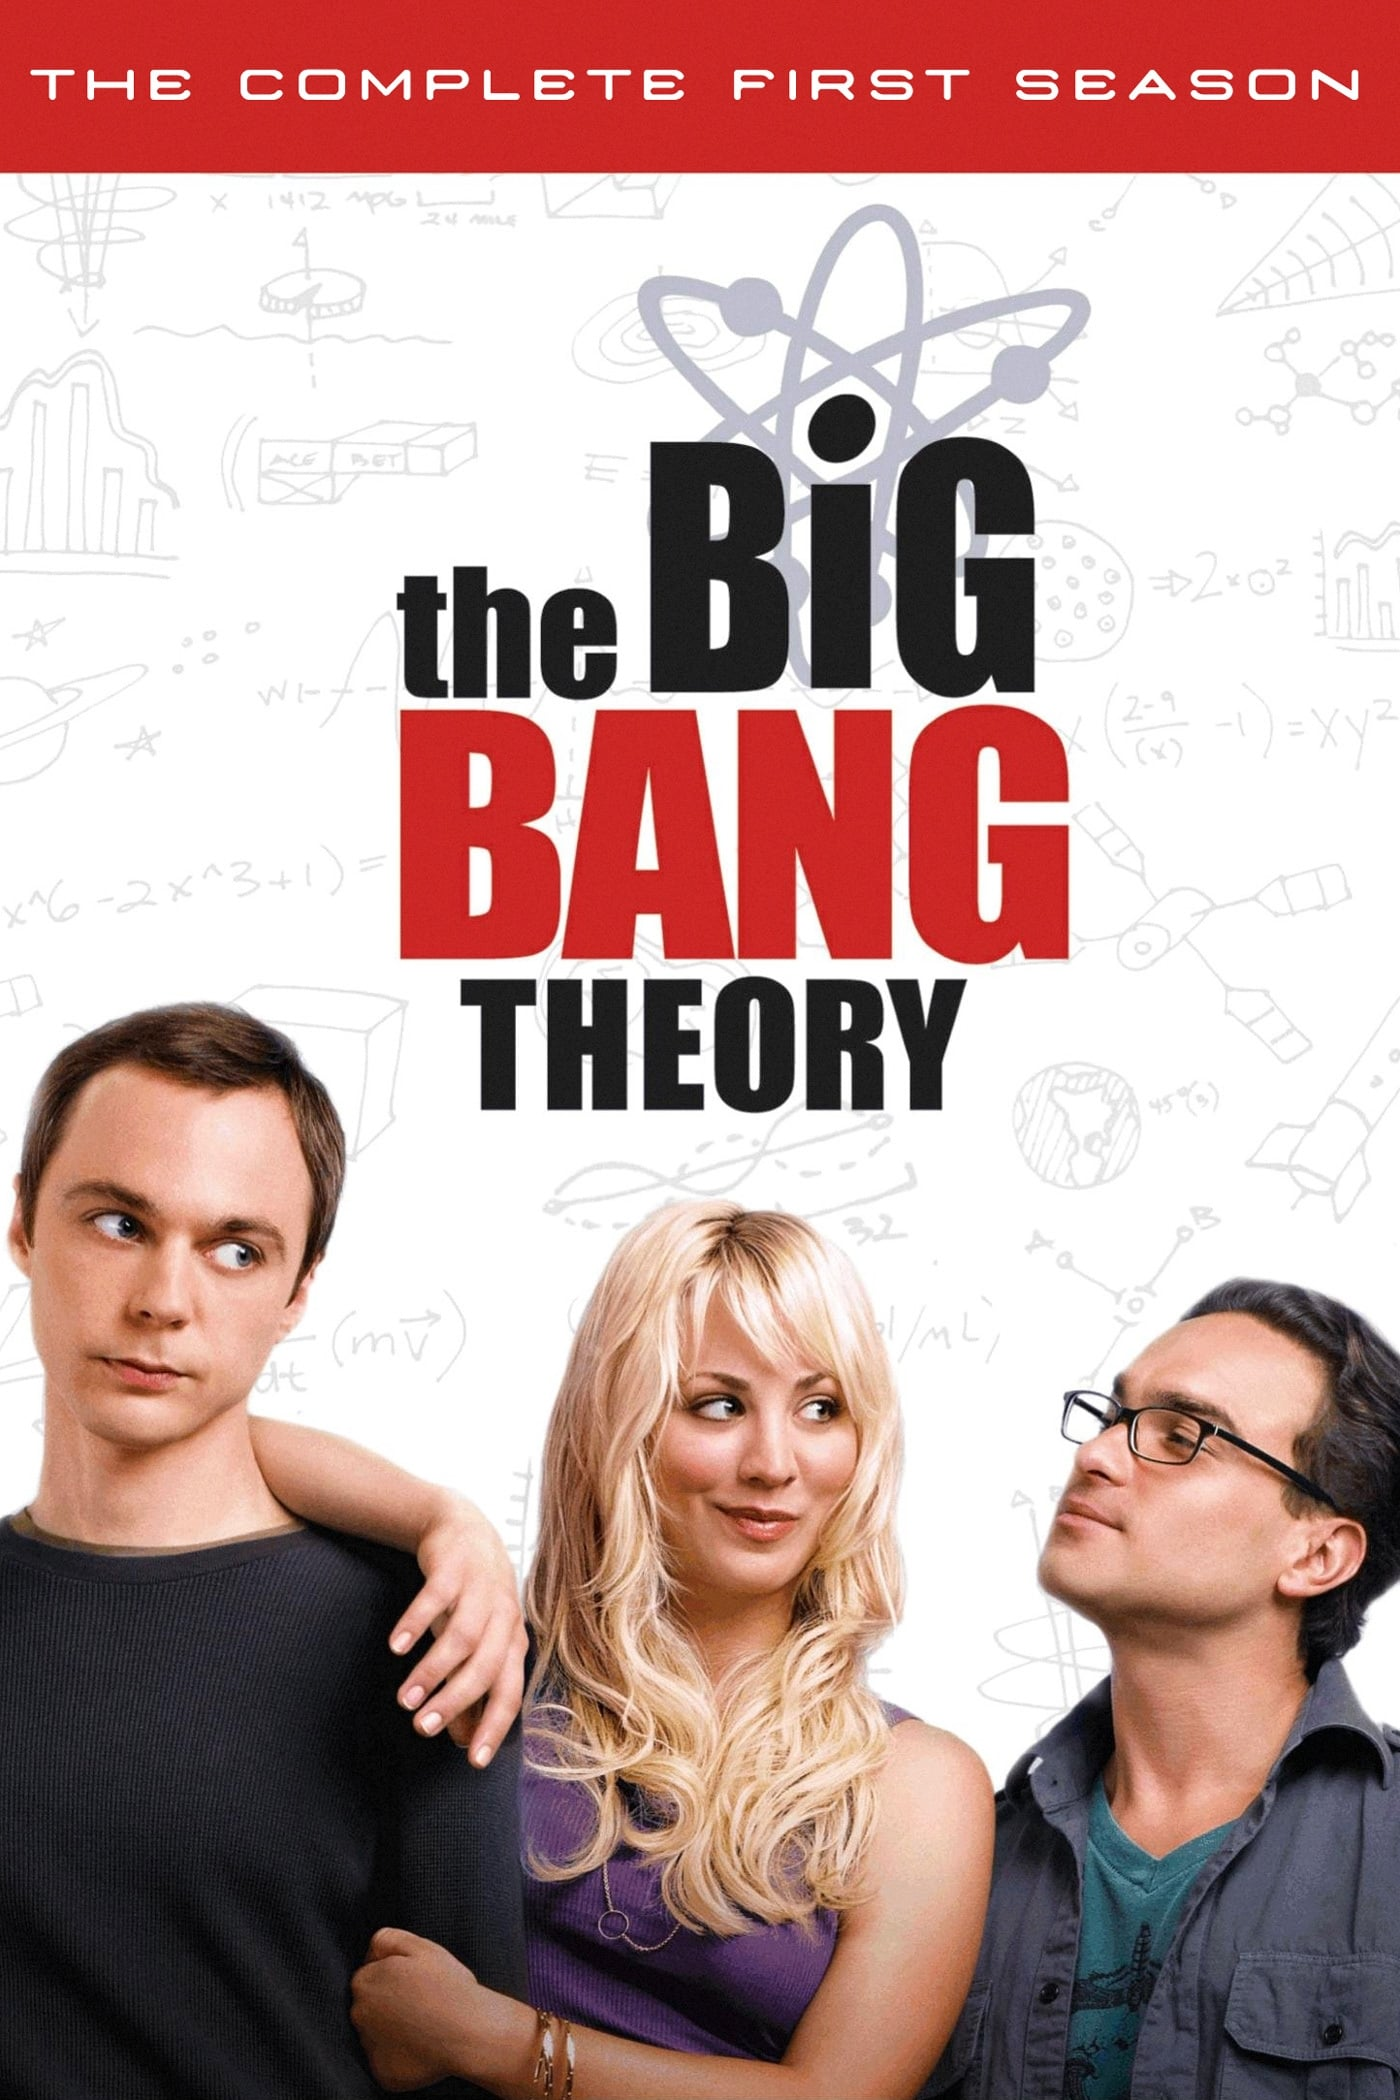 http://ywz168.com/the-big-bang-theory-1a-temporada-2007-bluray-720p-dual-audio-torrent-download/